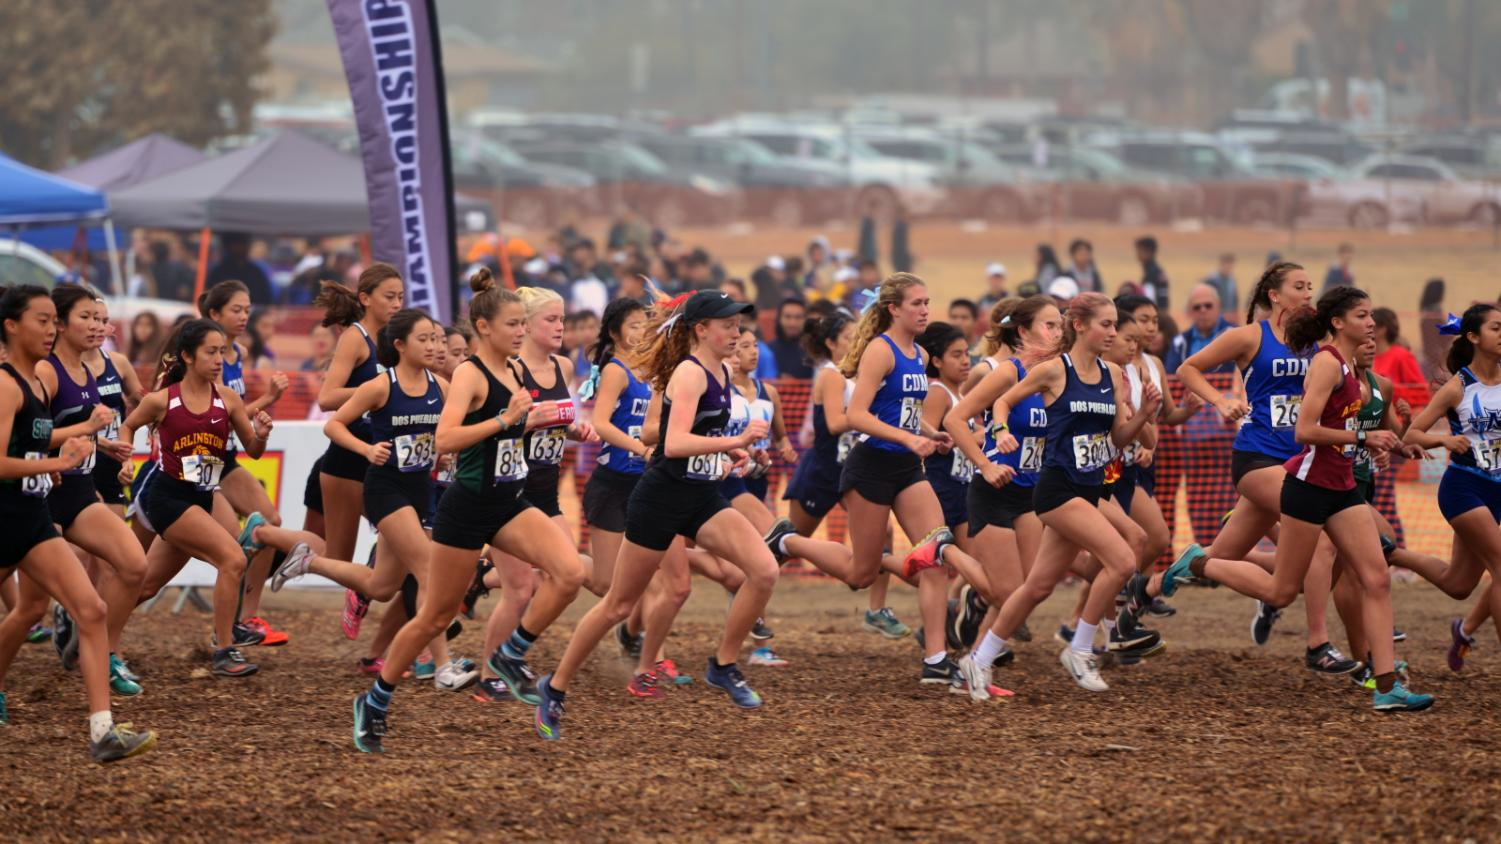 Freshmen Jadyn Zdanavage explodes out of the startline at the CIF Southern Section Prelims meet. The girls cross country team has had many exceptional performances, including two first and one second place finishes at large invitationals.